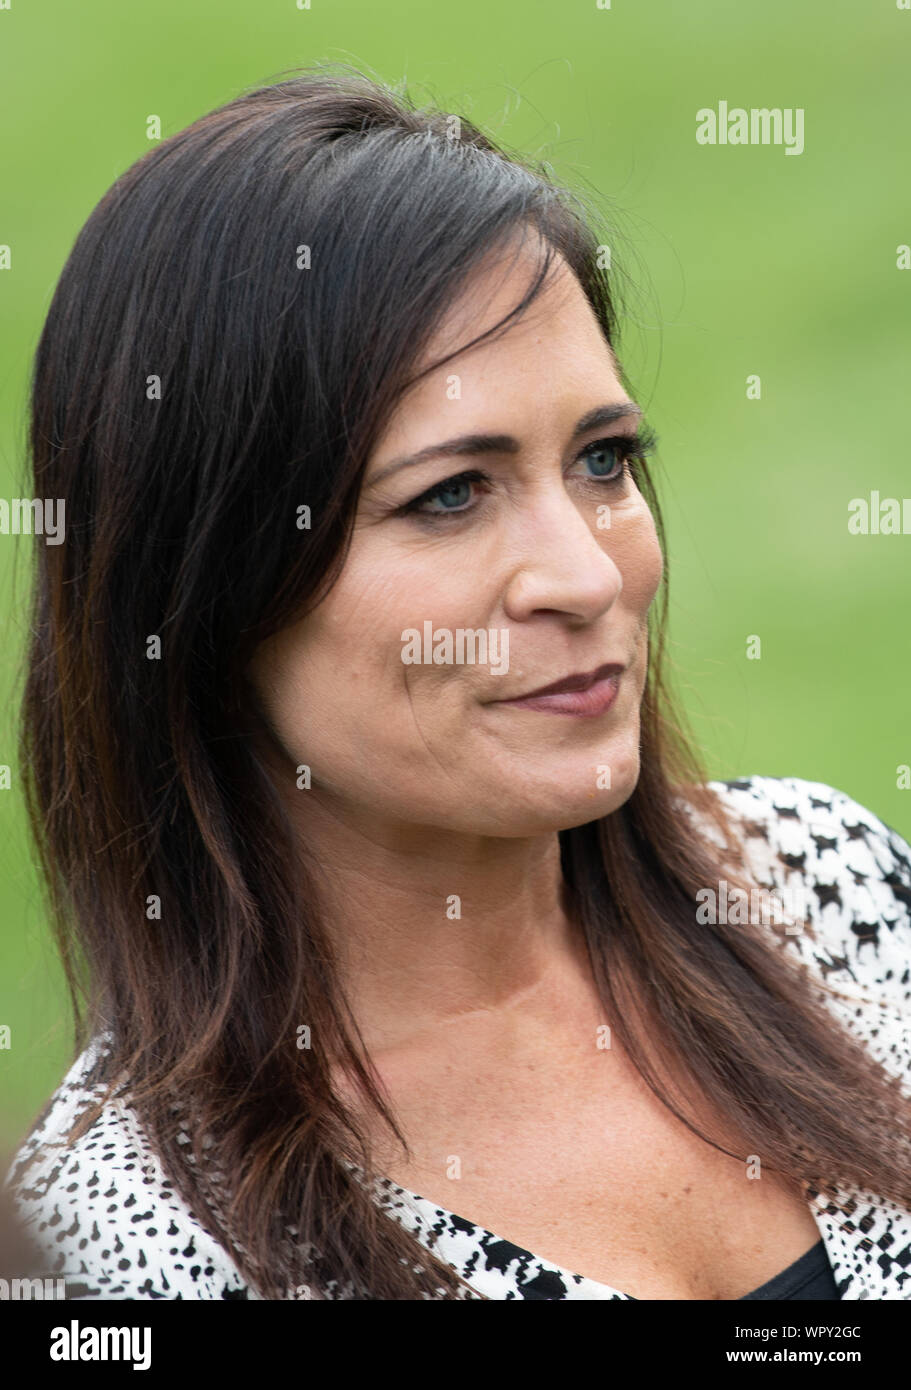 Washington DC, USA. 9th Sep 2019. White House Press Secretary Stephanie Grisham listens as President Donald Trump speaks to the media as he departs the White House for a rally in North Carolina, in Washington, DC on Monday, September 9, 2019. Photo by Kevin Dietsch/UPI Credit: UPI/Alamy Live News Stock Photo